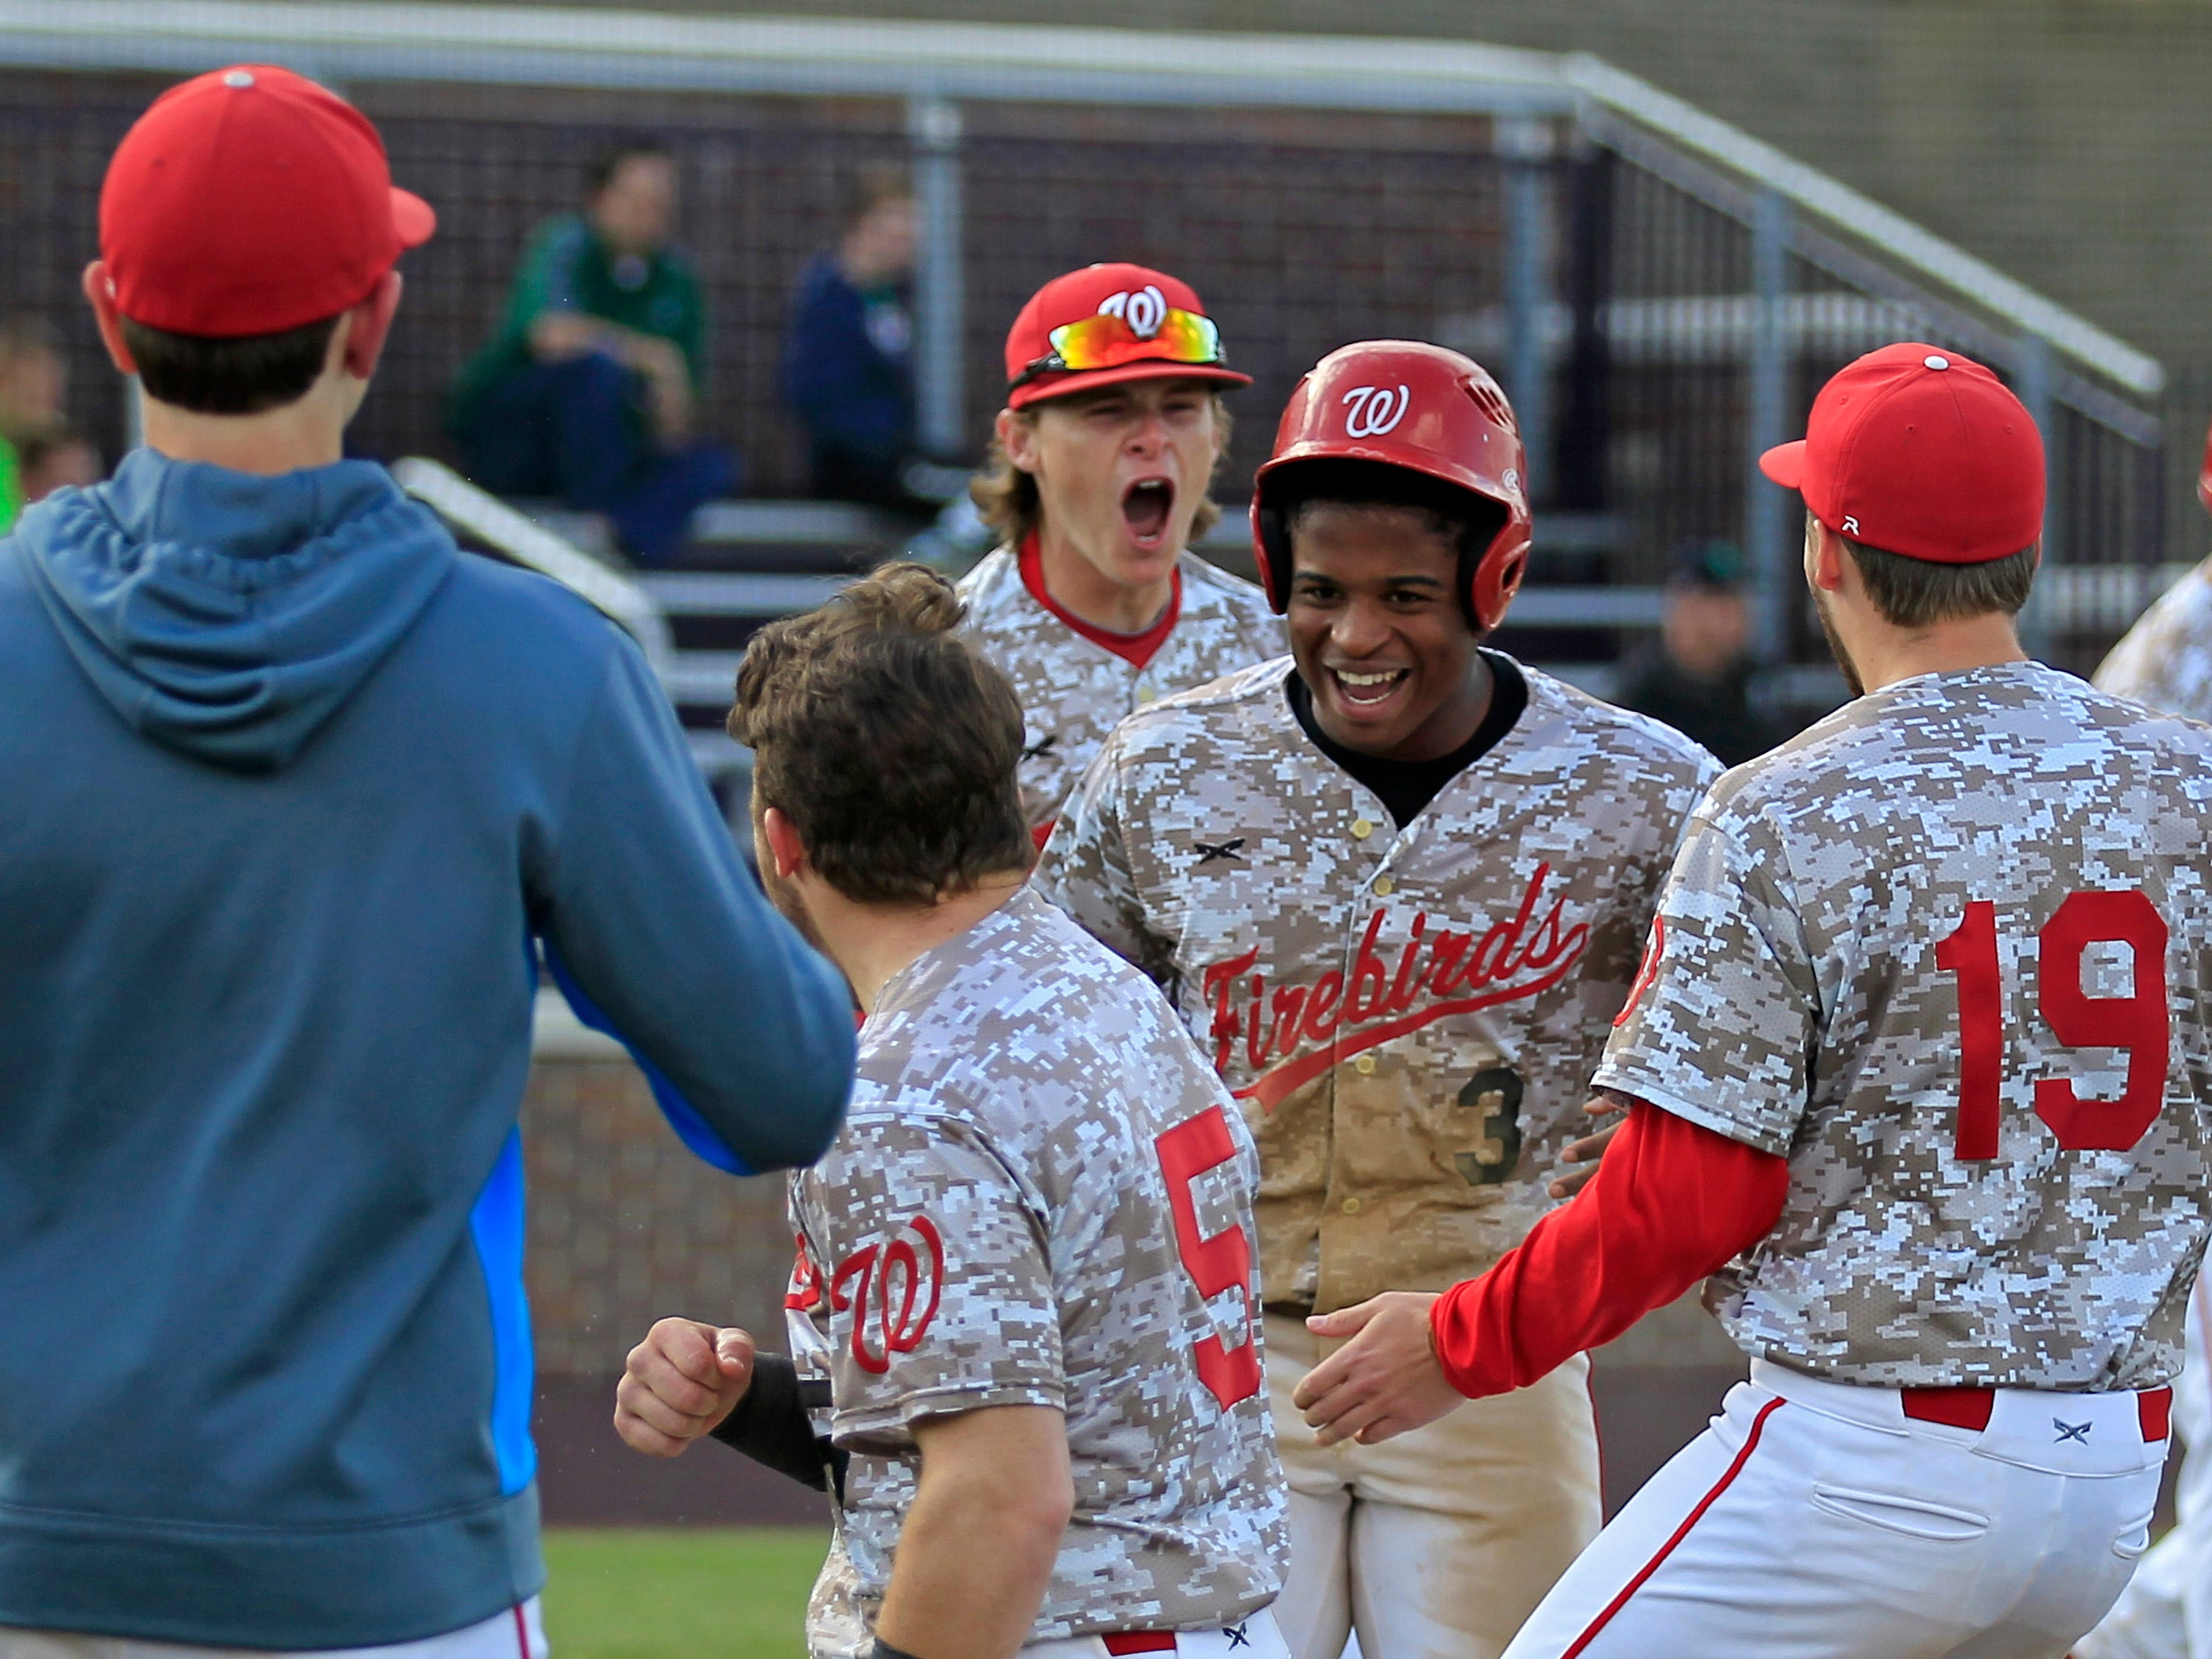 052115 LAKOTAHARRISON Thursday, May 21, 2015. CINCINNATI The Lakota West bench celebrates after senior Jeremiah Johnson's RBI double scoring the fourth run during the bottom of the sixth inning of the OHSAA D1 sectional final game between Lakota West High School and Harrison High School at the Panther Athletic Complex in the Price Hill neighborhood of Cincinnati, on Thursday, May 21, 2015. Lakota West defeated Harrison, 4-0, to advance to the District Final. (The Enquirer/Sam Greene)